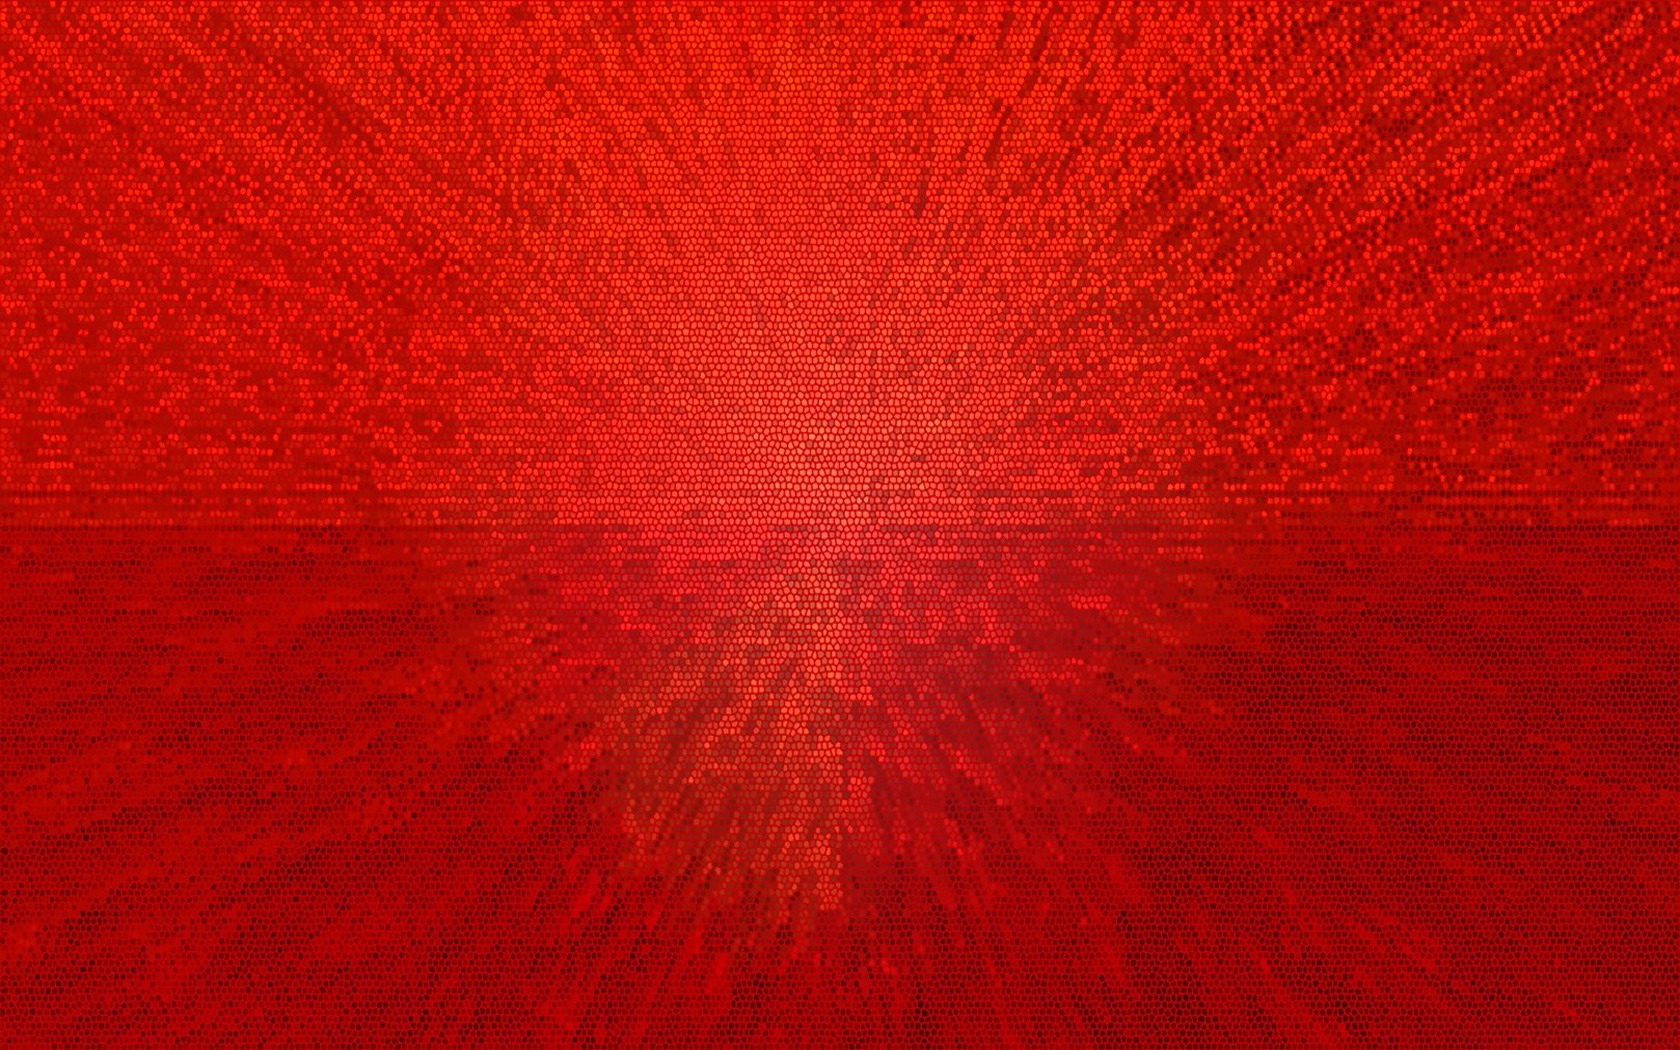 gallery/solid-red-wallpaper-8